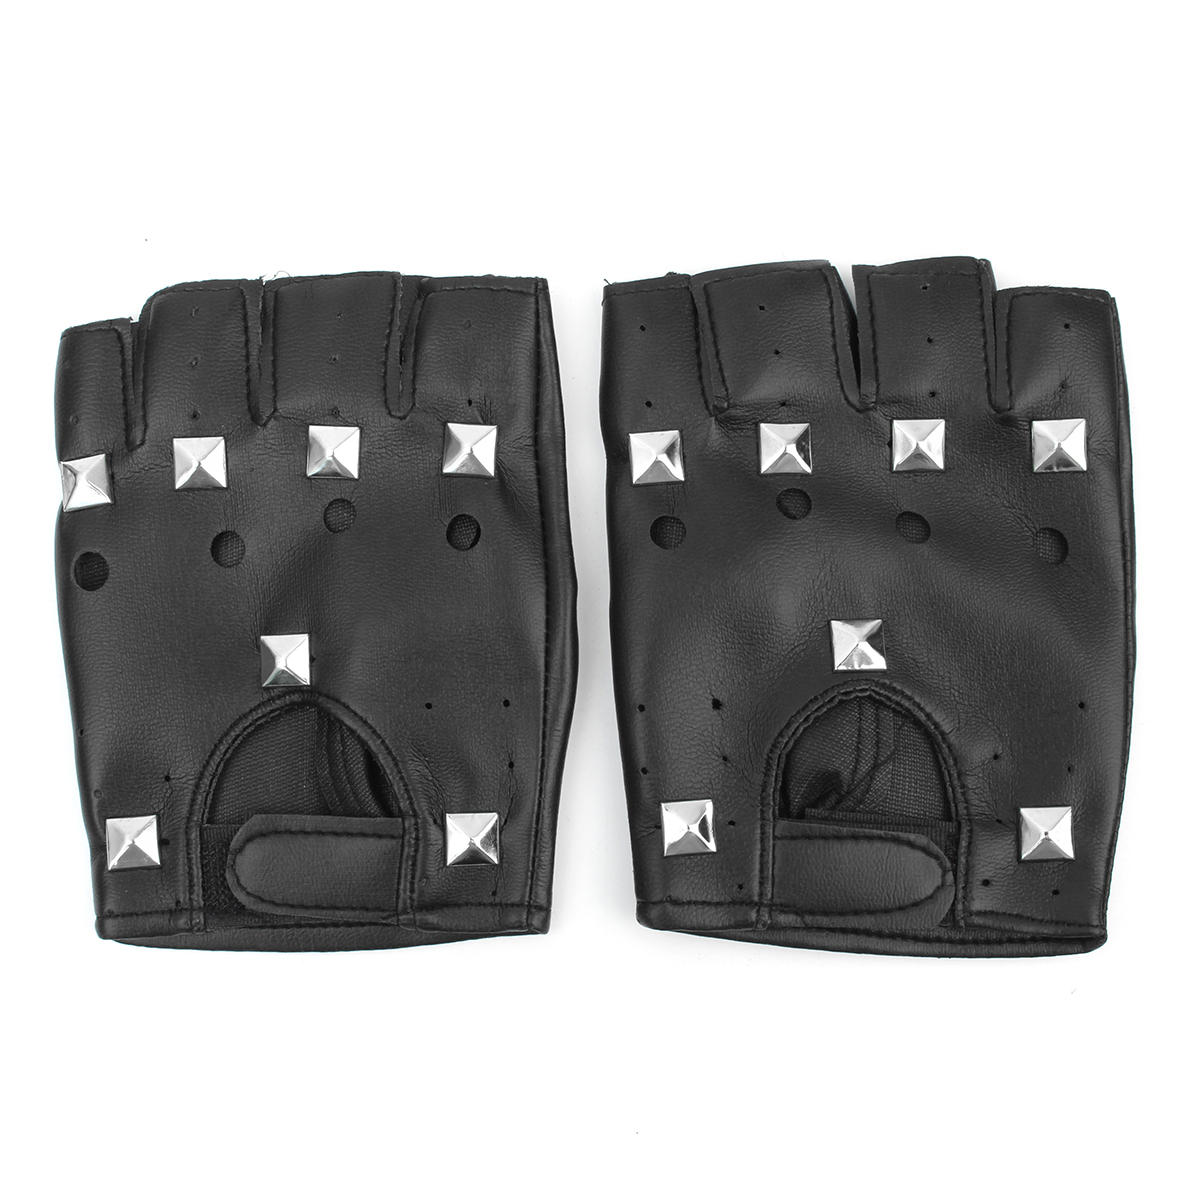 a7aaf0944 fingerless punk rivet leather gloves motorcycle driving mittens Sale -  Banggood.com sold out